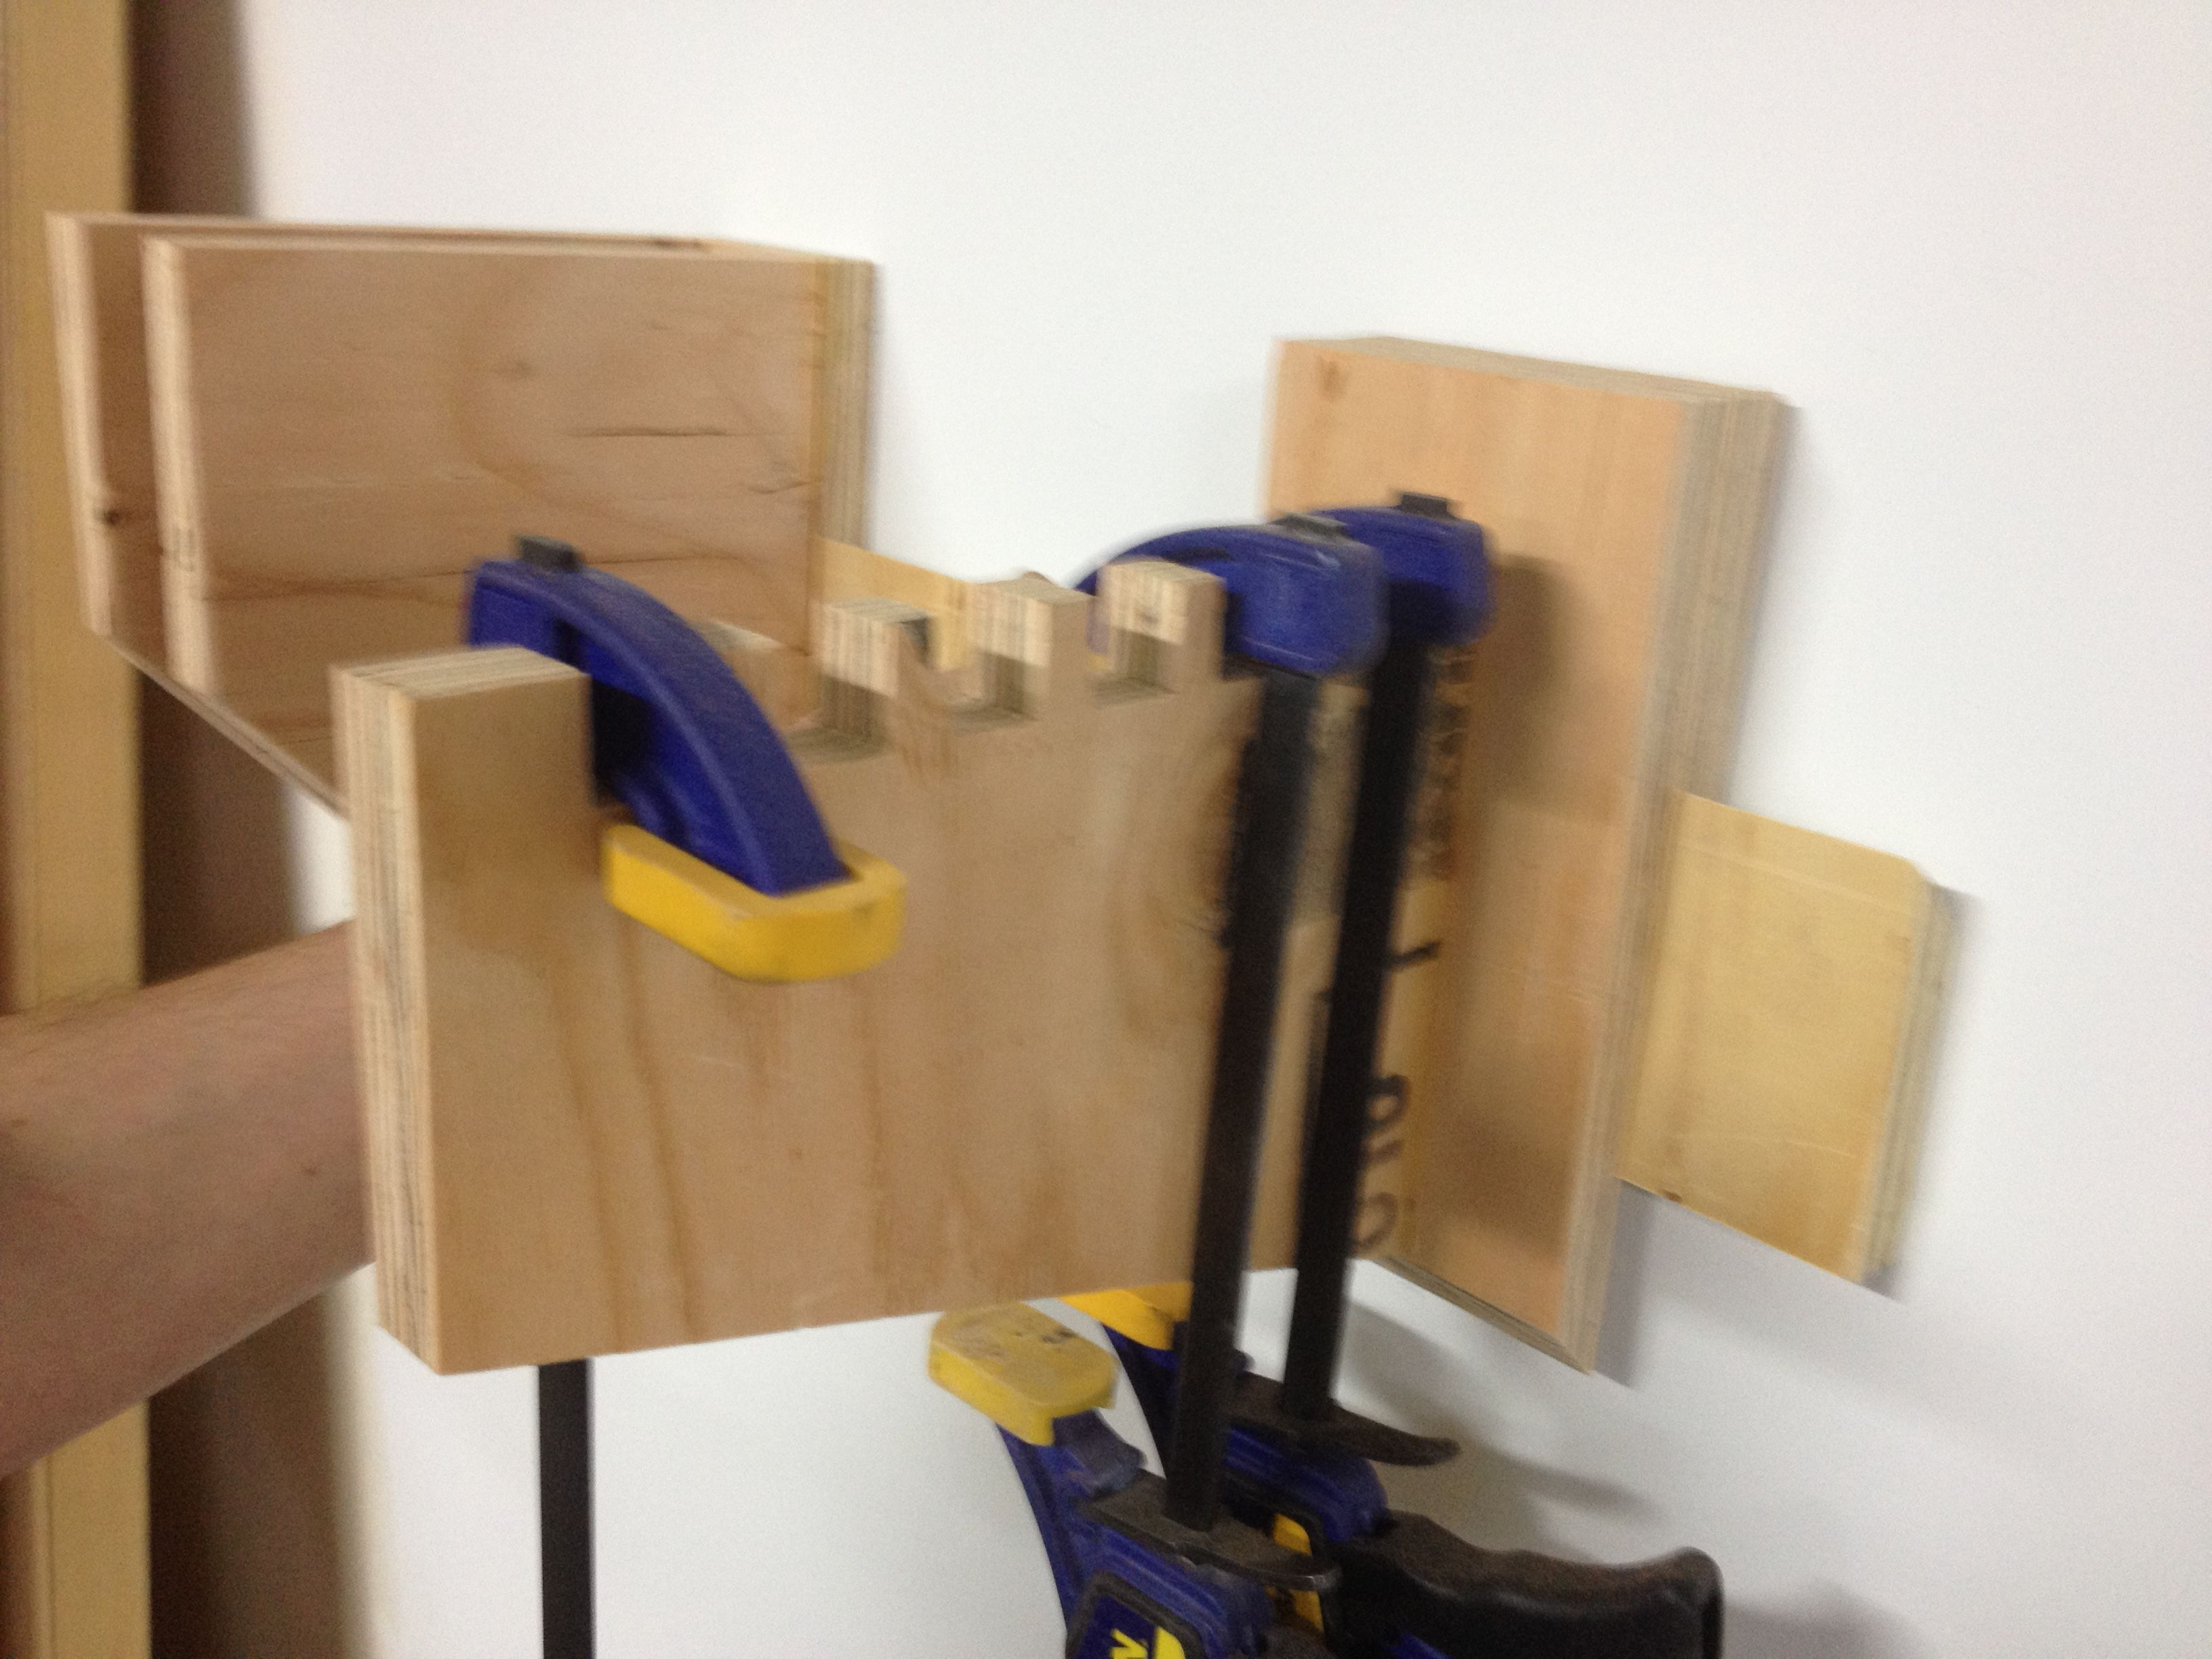 Picture of 2 Styles of French Cleat Clamp Hanger Brackets